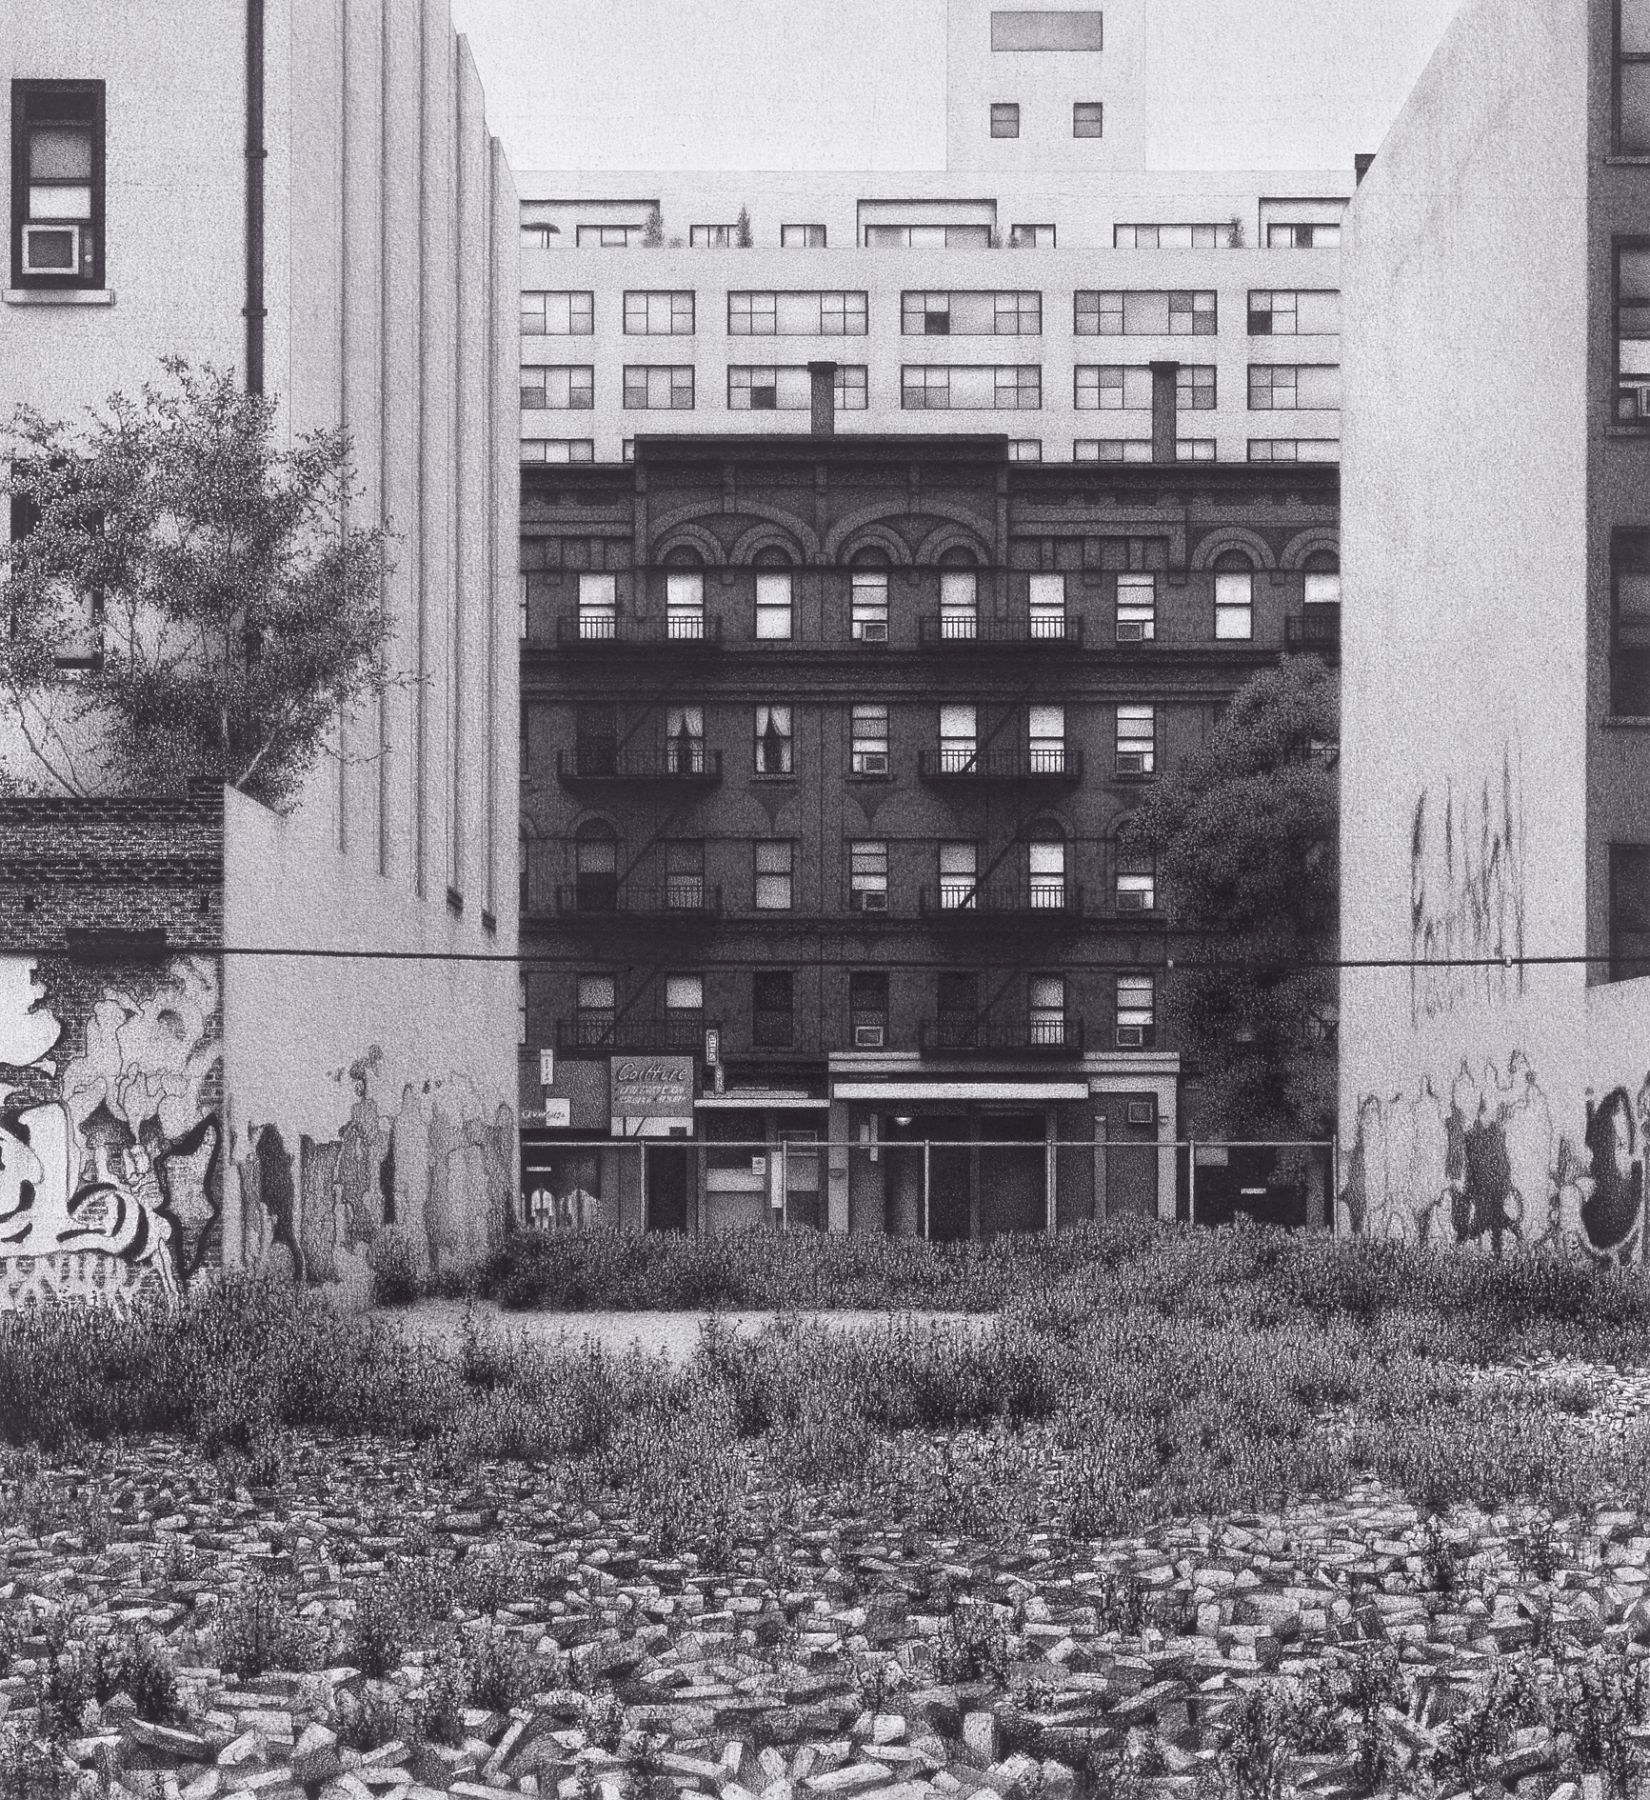 Anthony Mitri Vacant Lot, Manhattan (SOLD), 2007, charcoal on paper, 18 x 16 1/2 inches